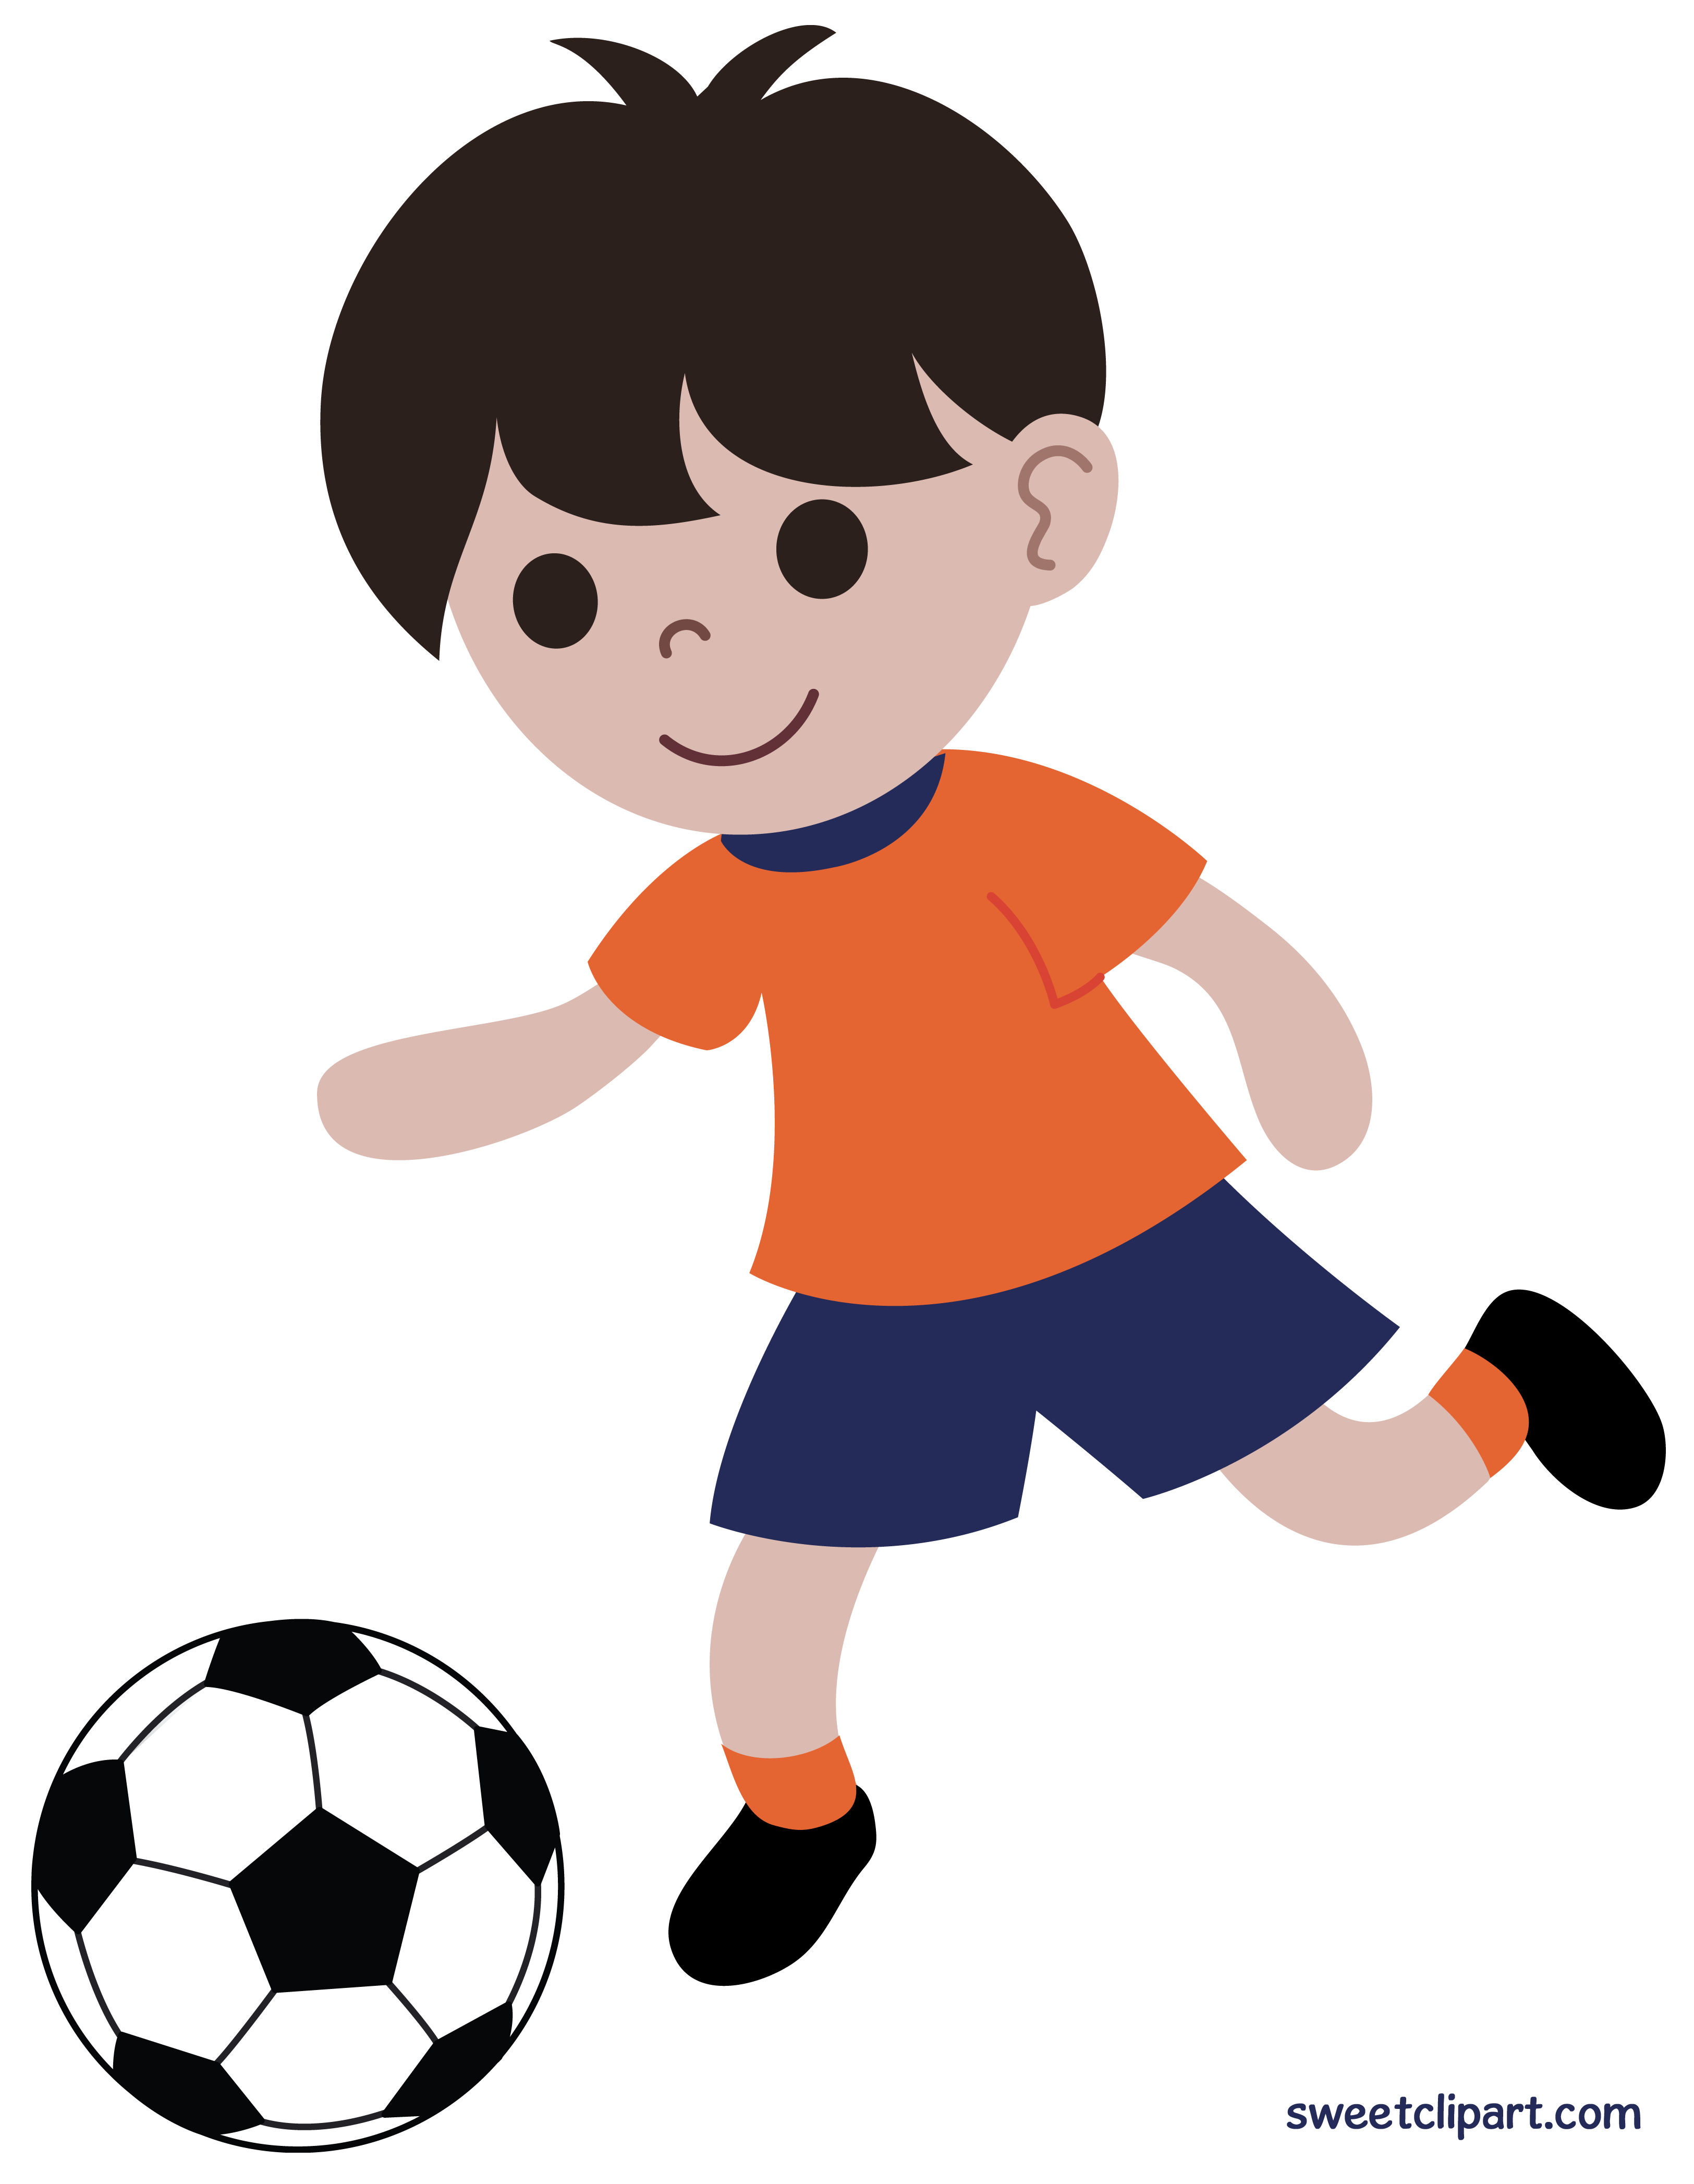 Player clipart. Girl playing soccer at